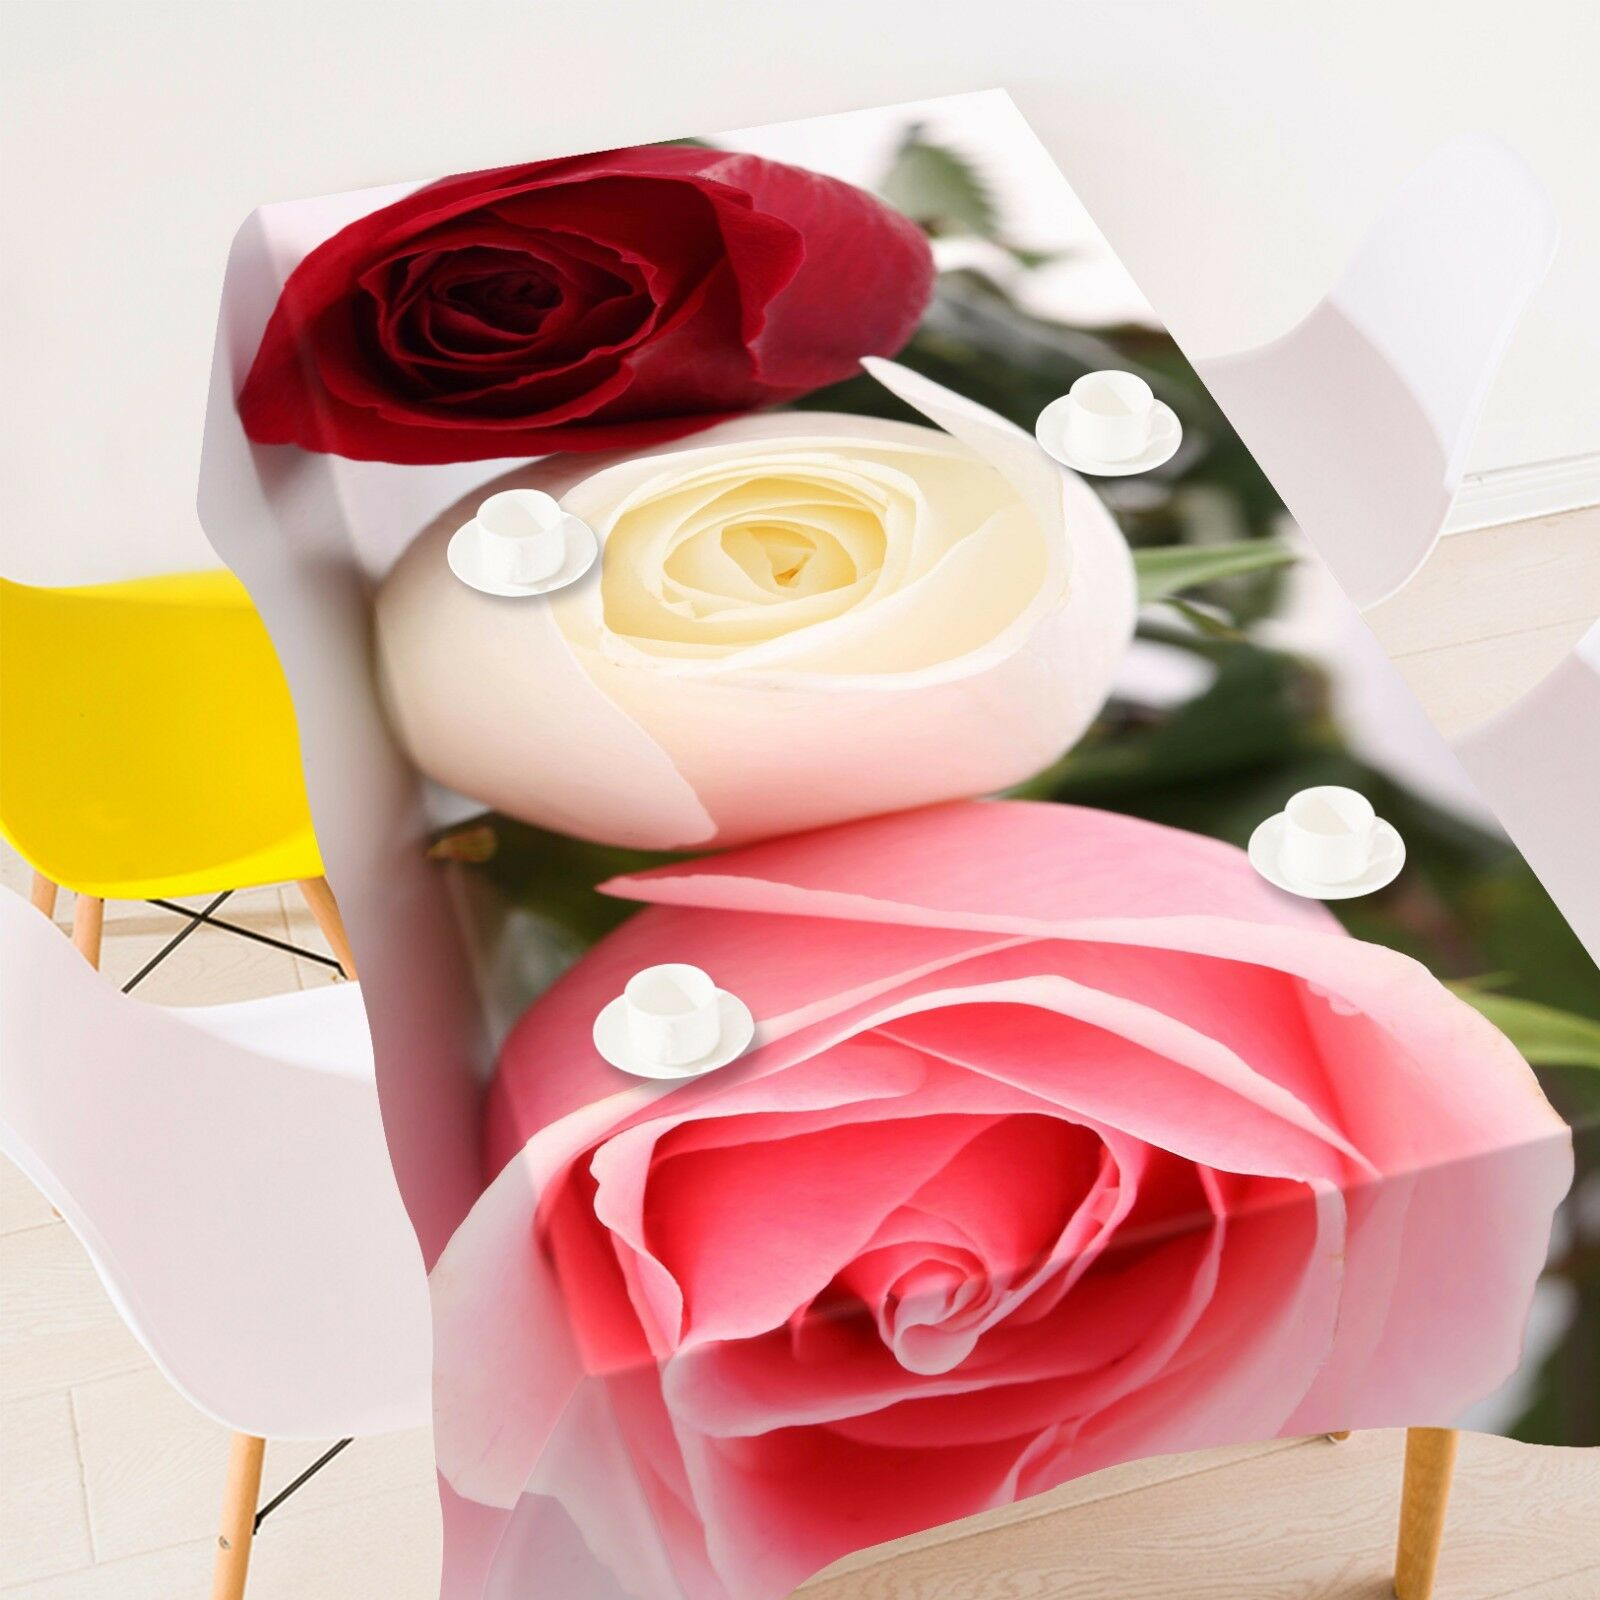 3D Rose 4296 Tablecloth Table Cover Cloth Birthday Party Event AJ WALLPAPER AU